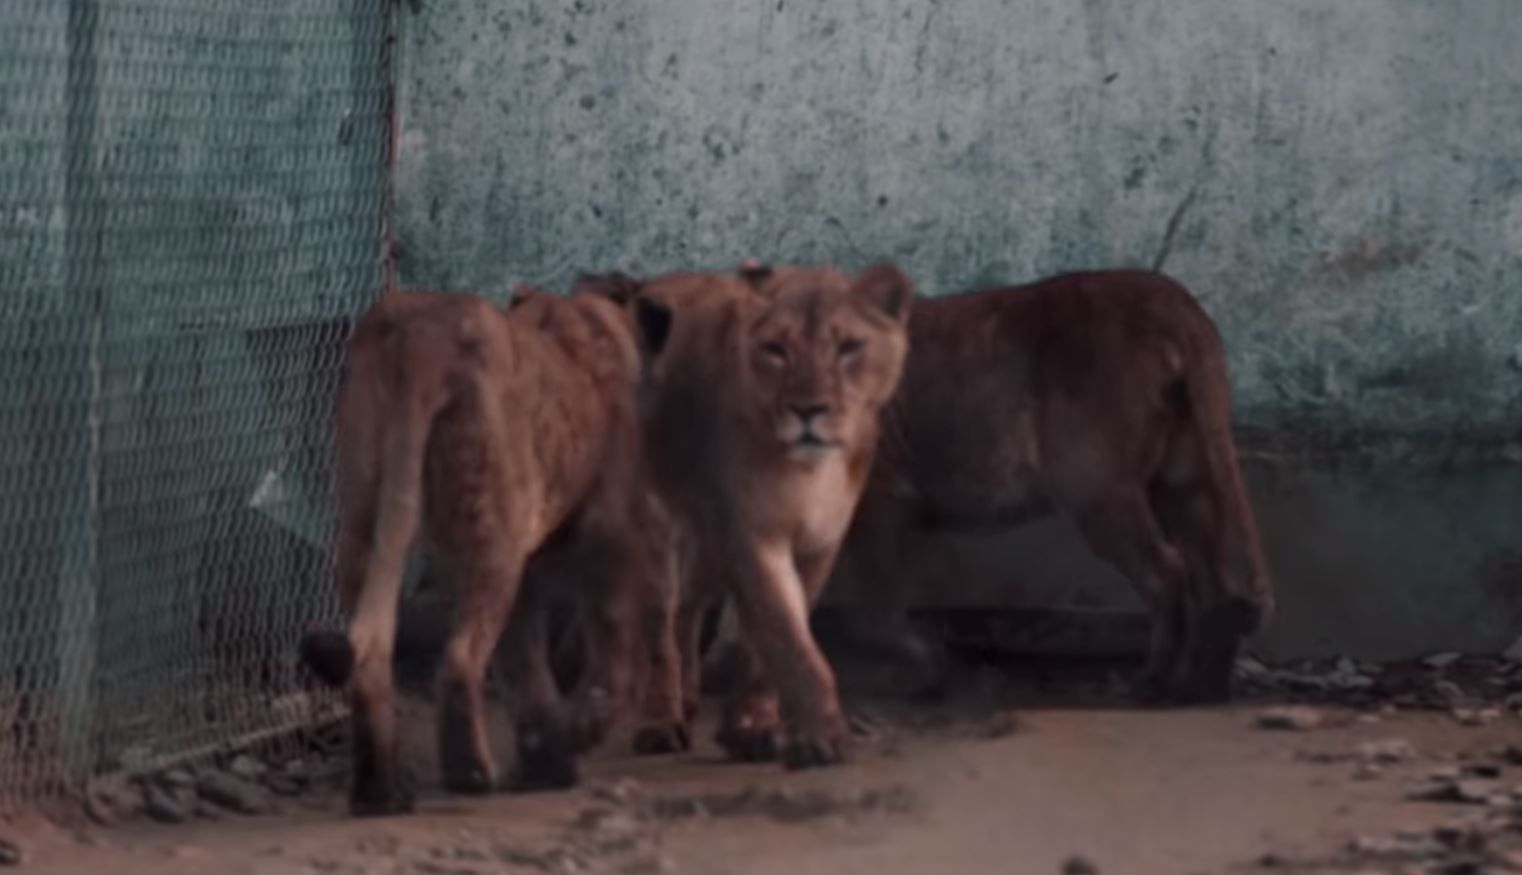 Three lions in a small enclosure.